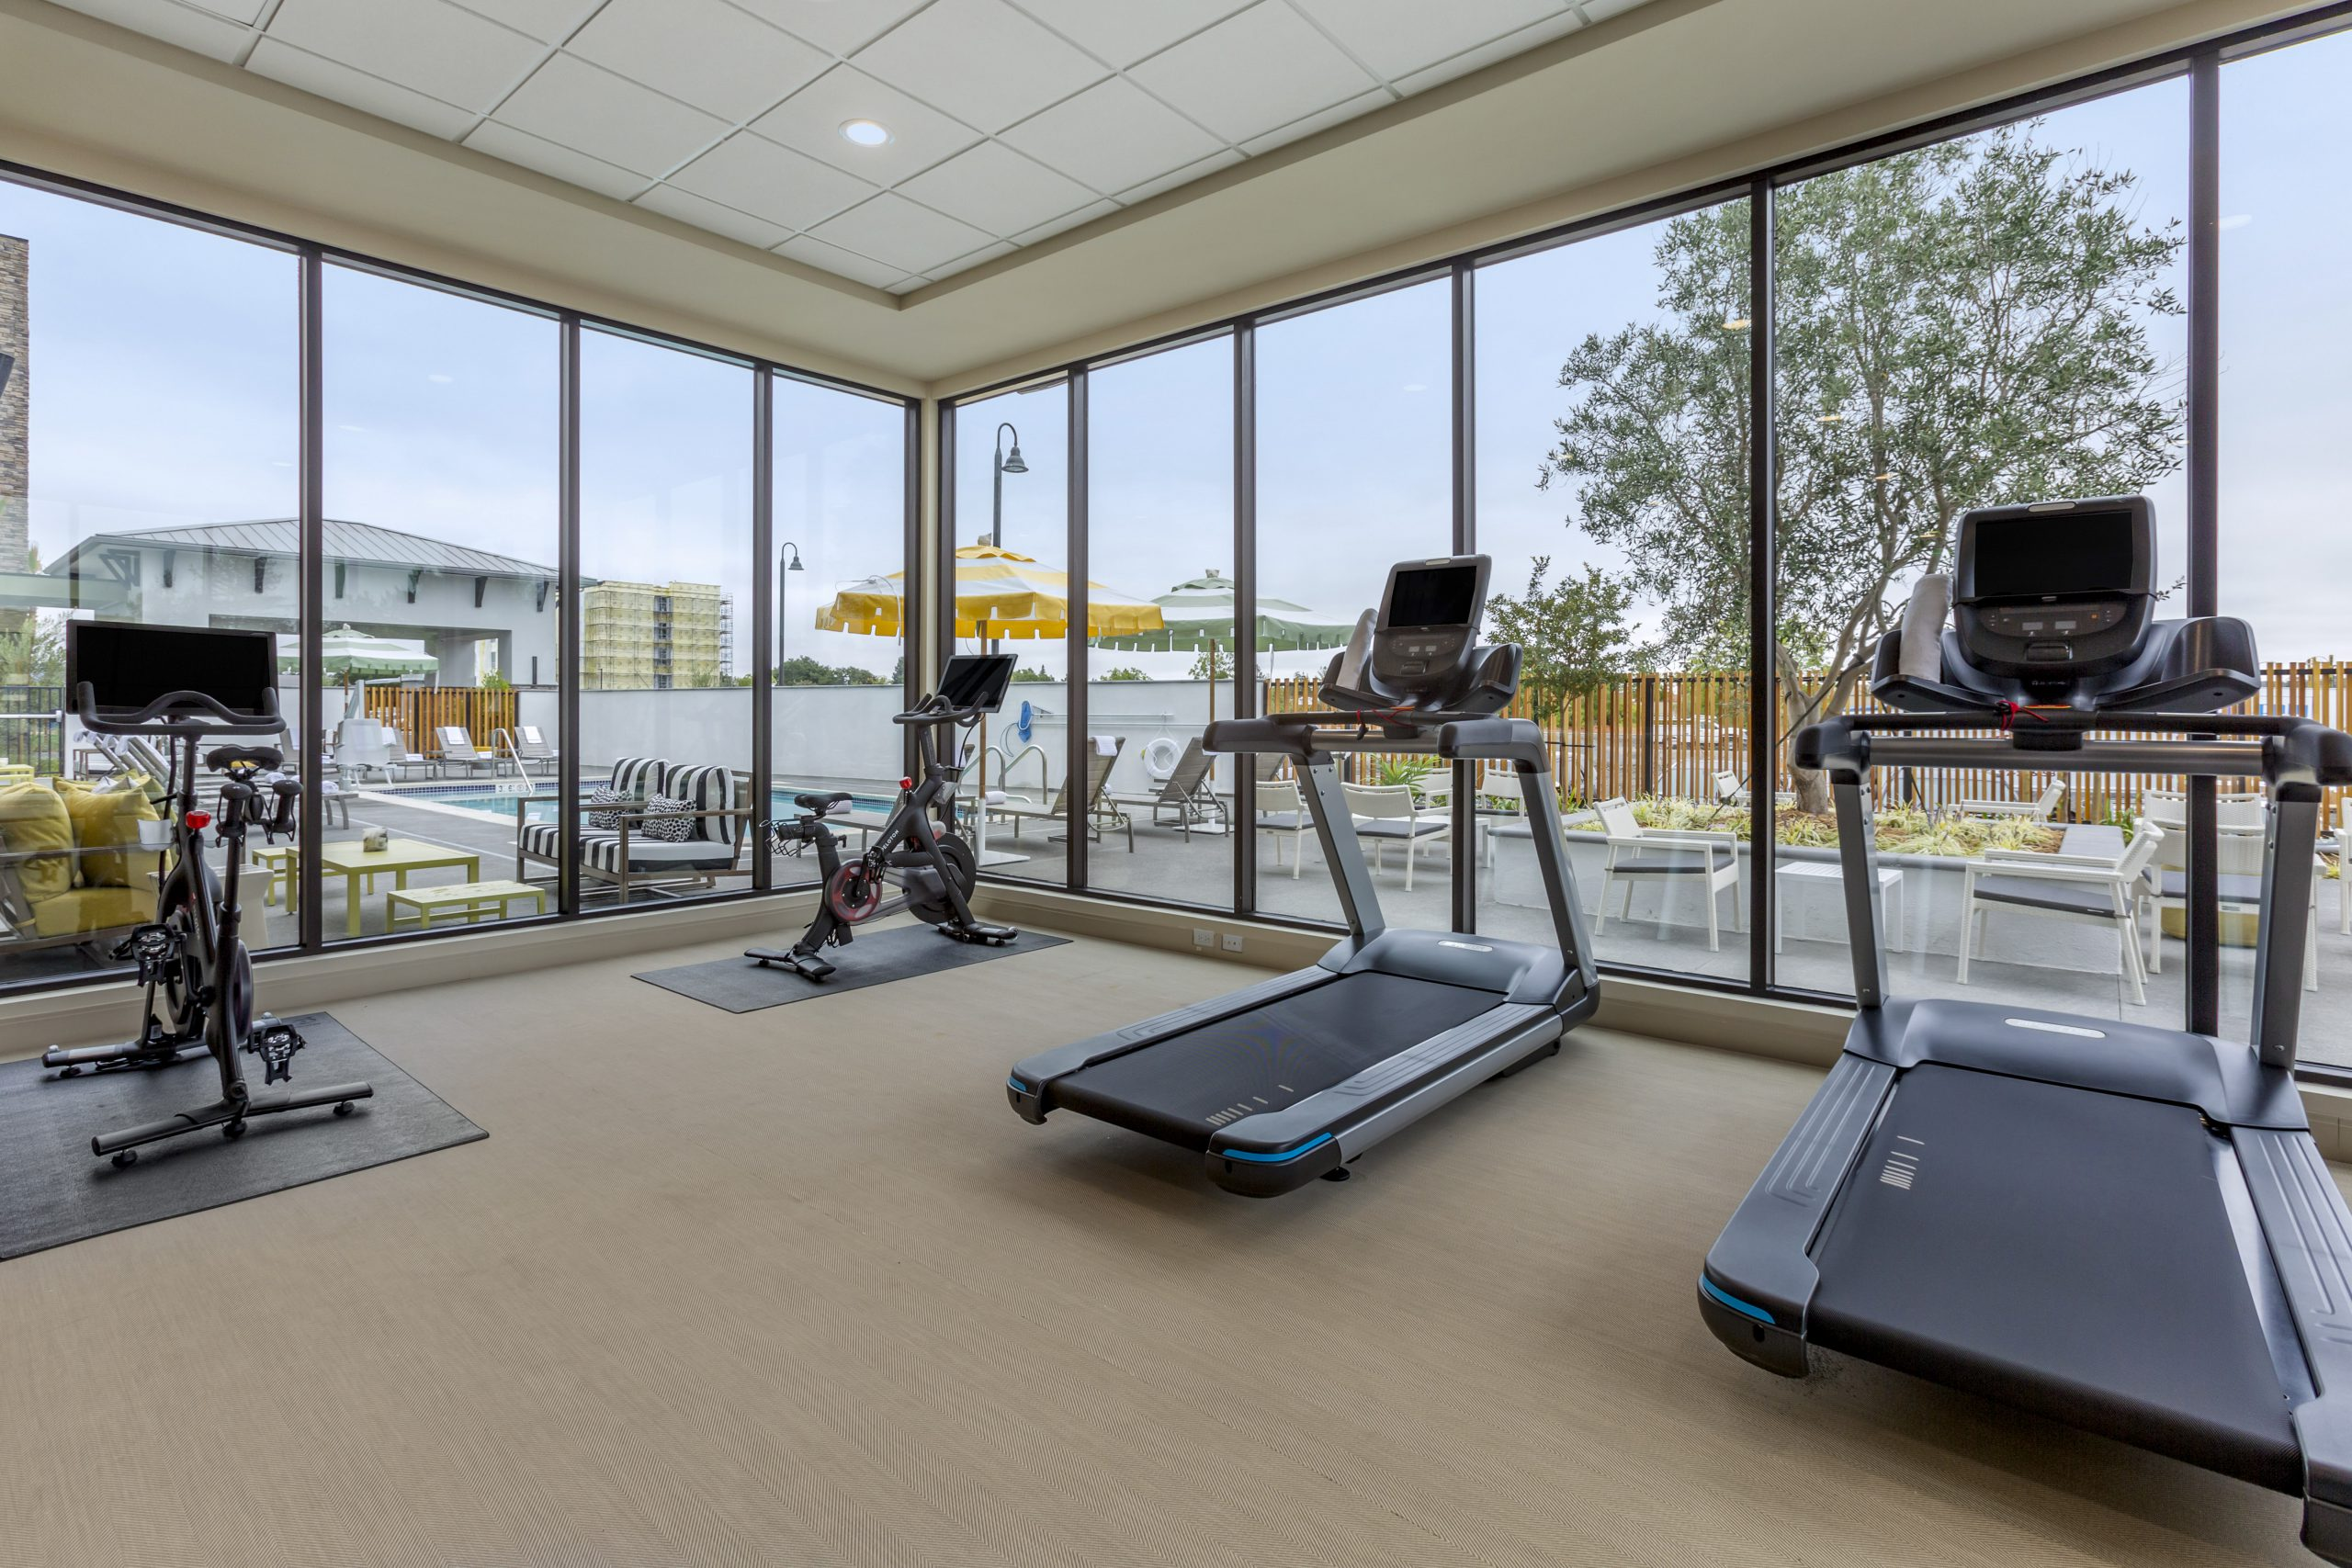 Fitness center featuring treadmills and stationary bikes with and outside view